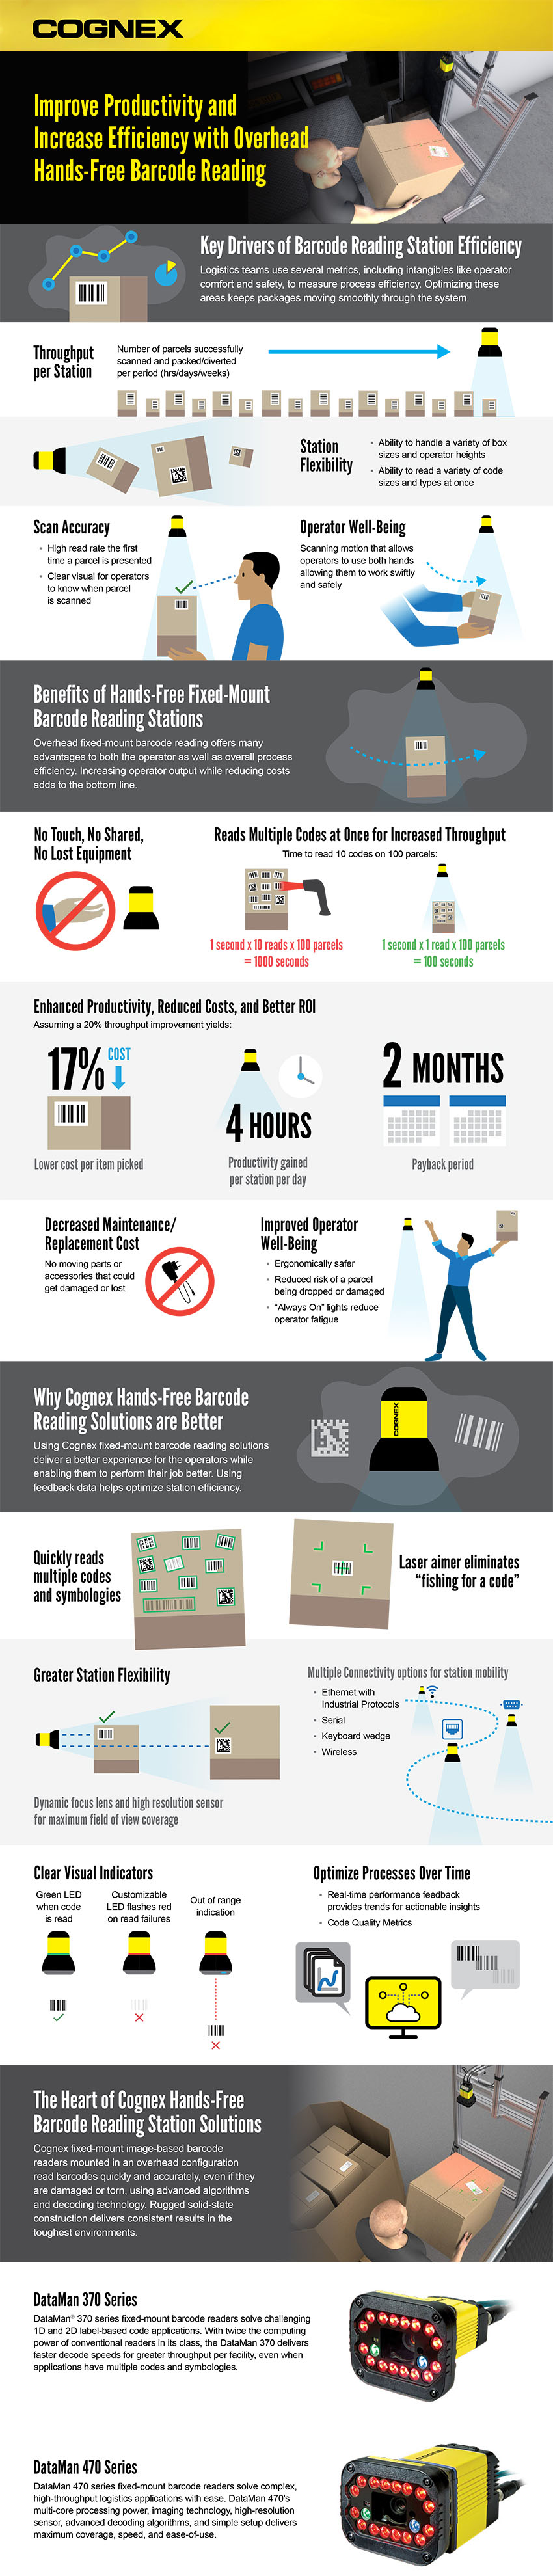 Infographic about improving productivity and efficiency with overhead hands-free barcode reading